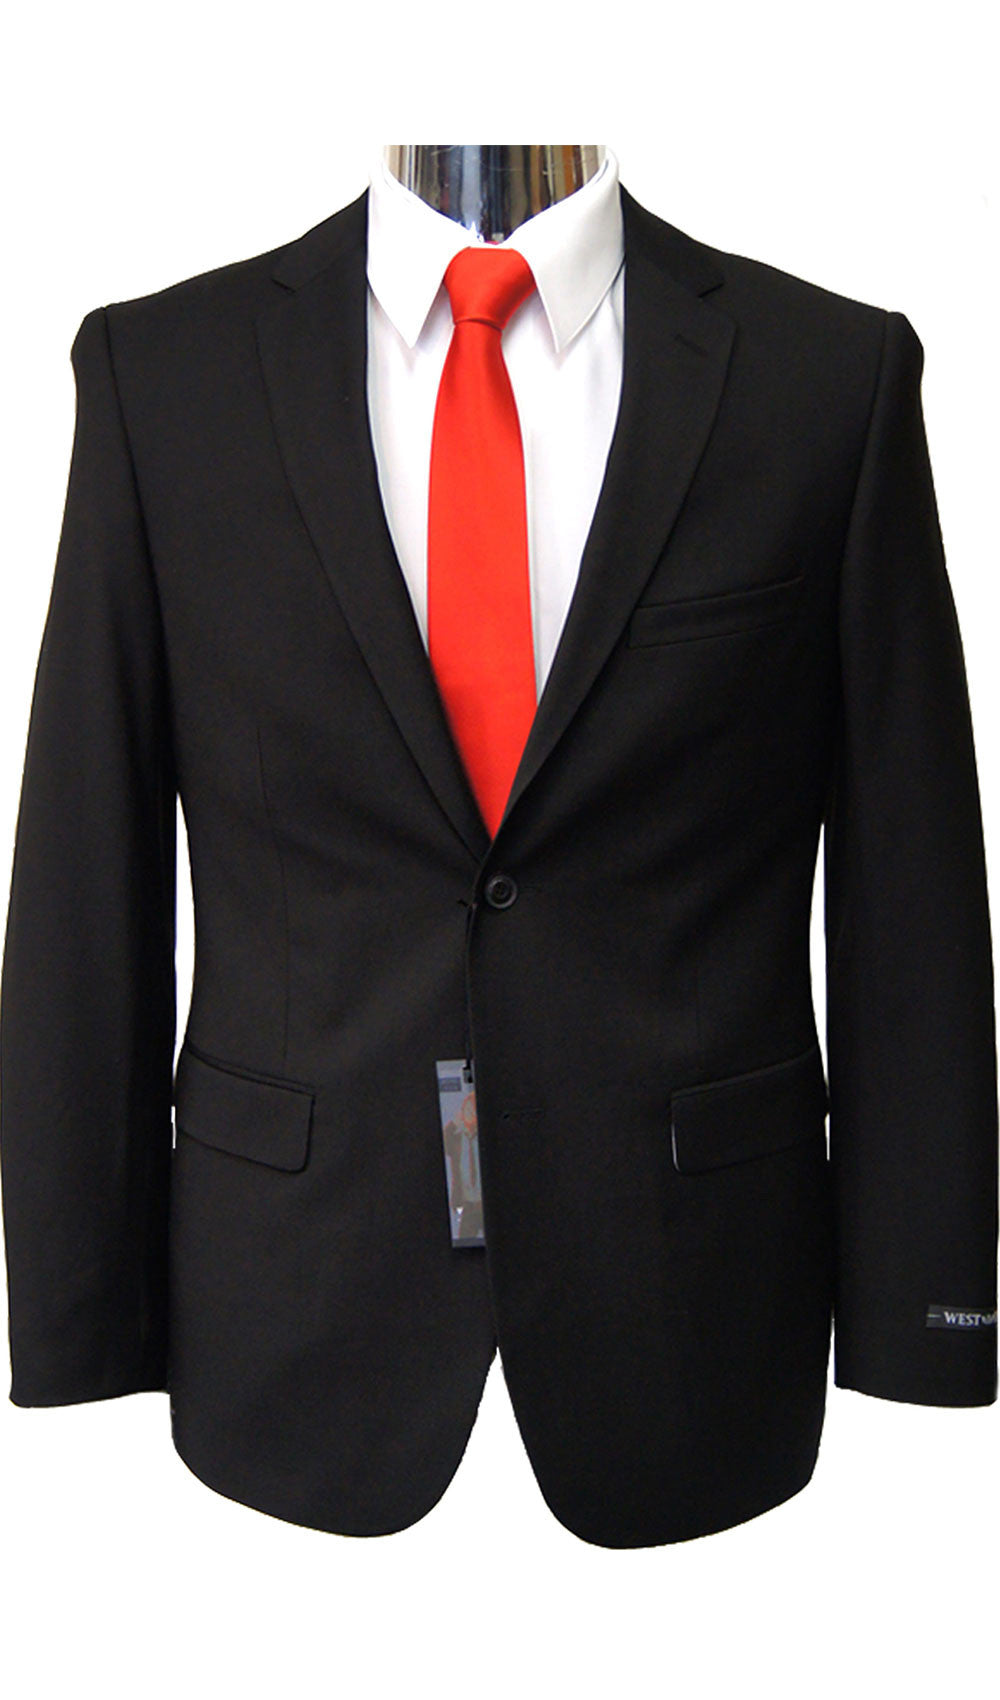 Copy of Caravelli - STYLE BLACK SLIM FIT SUIT Caravelli- Schaffer's Bridal in Des Moines & Phoenix